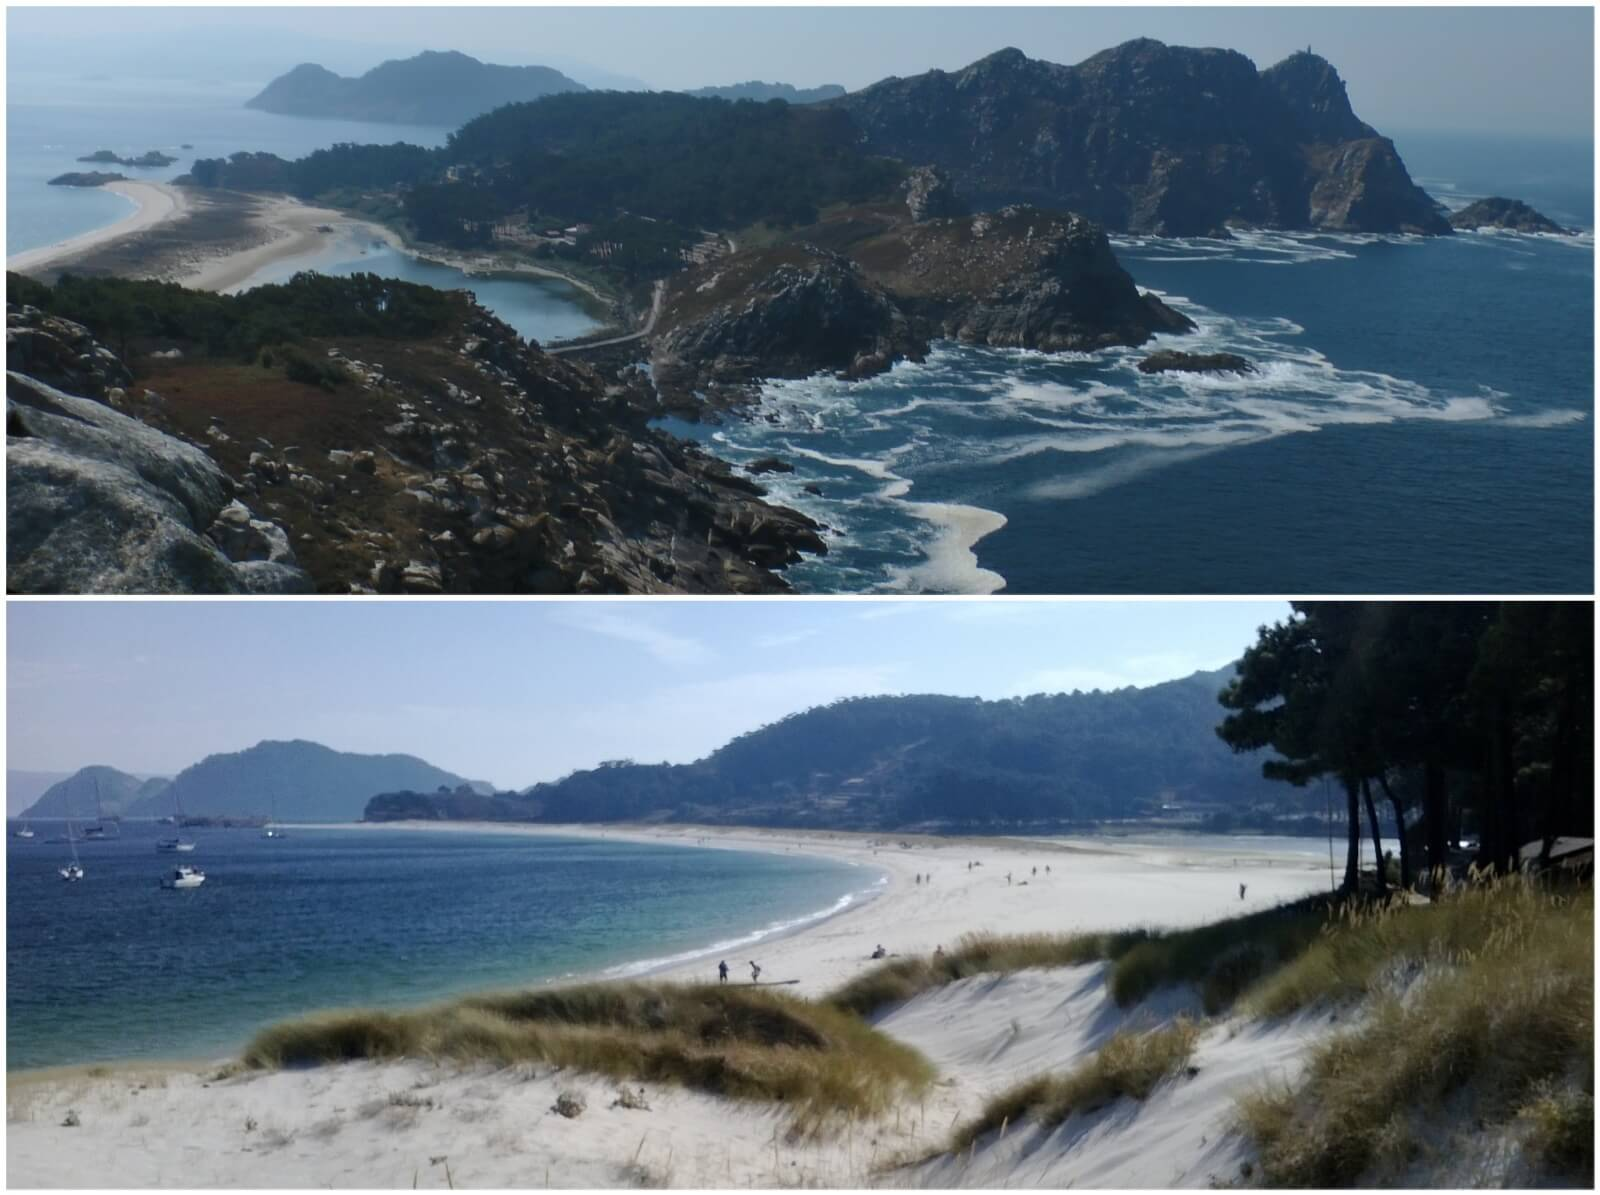 What to see and do in Northern Spain: top 6 ideas - 4. Cies Islands